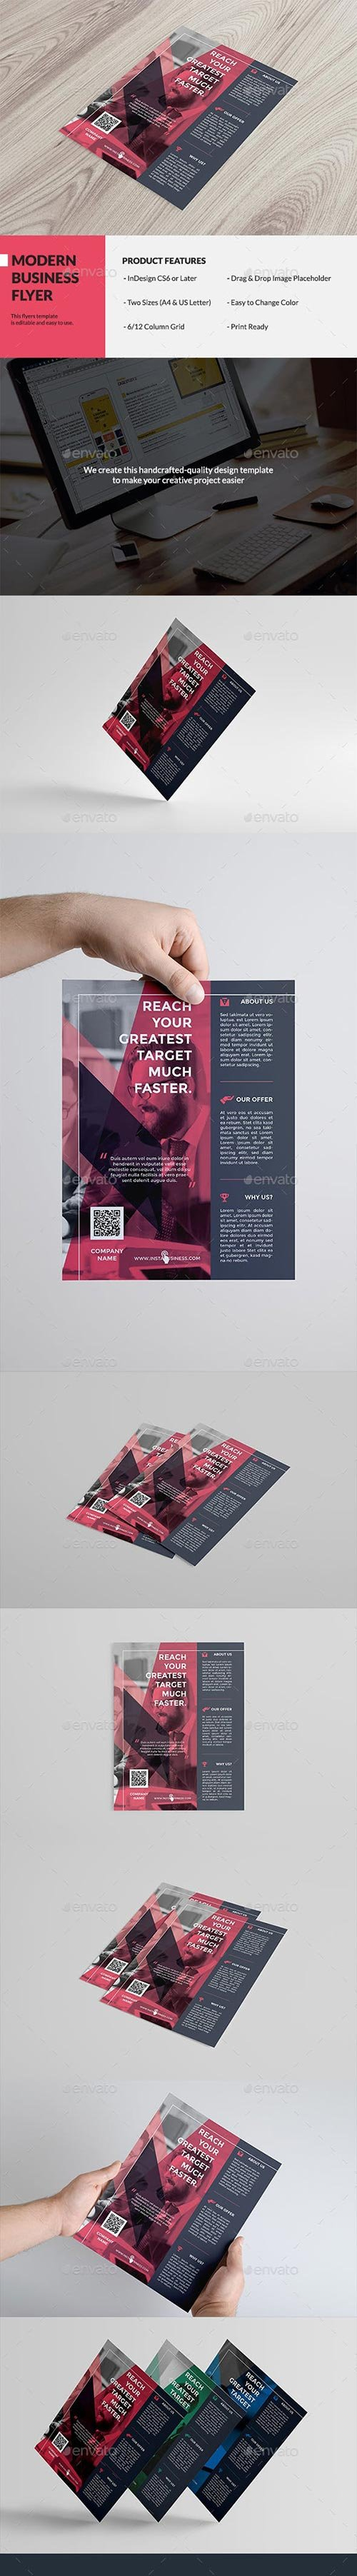 Graphicriver - Swiss Business Flyer 13484009